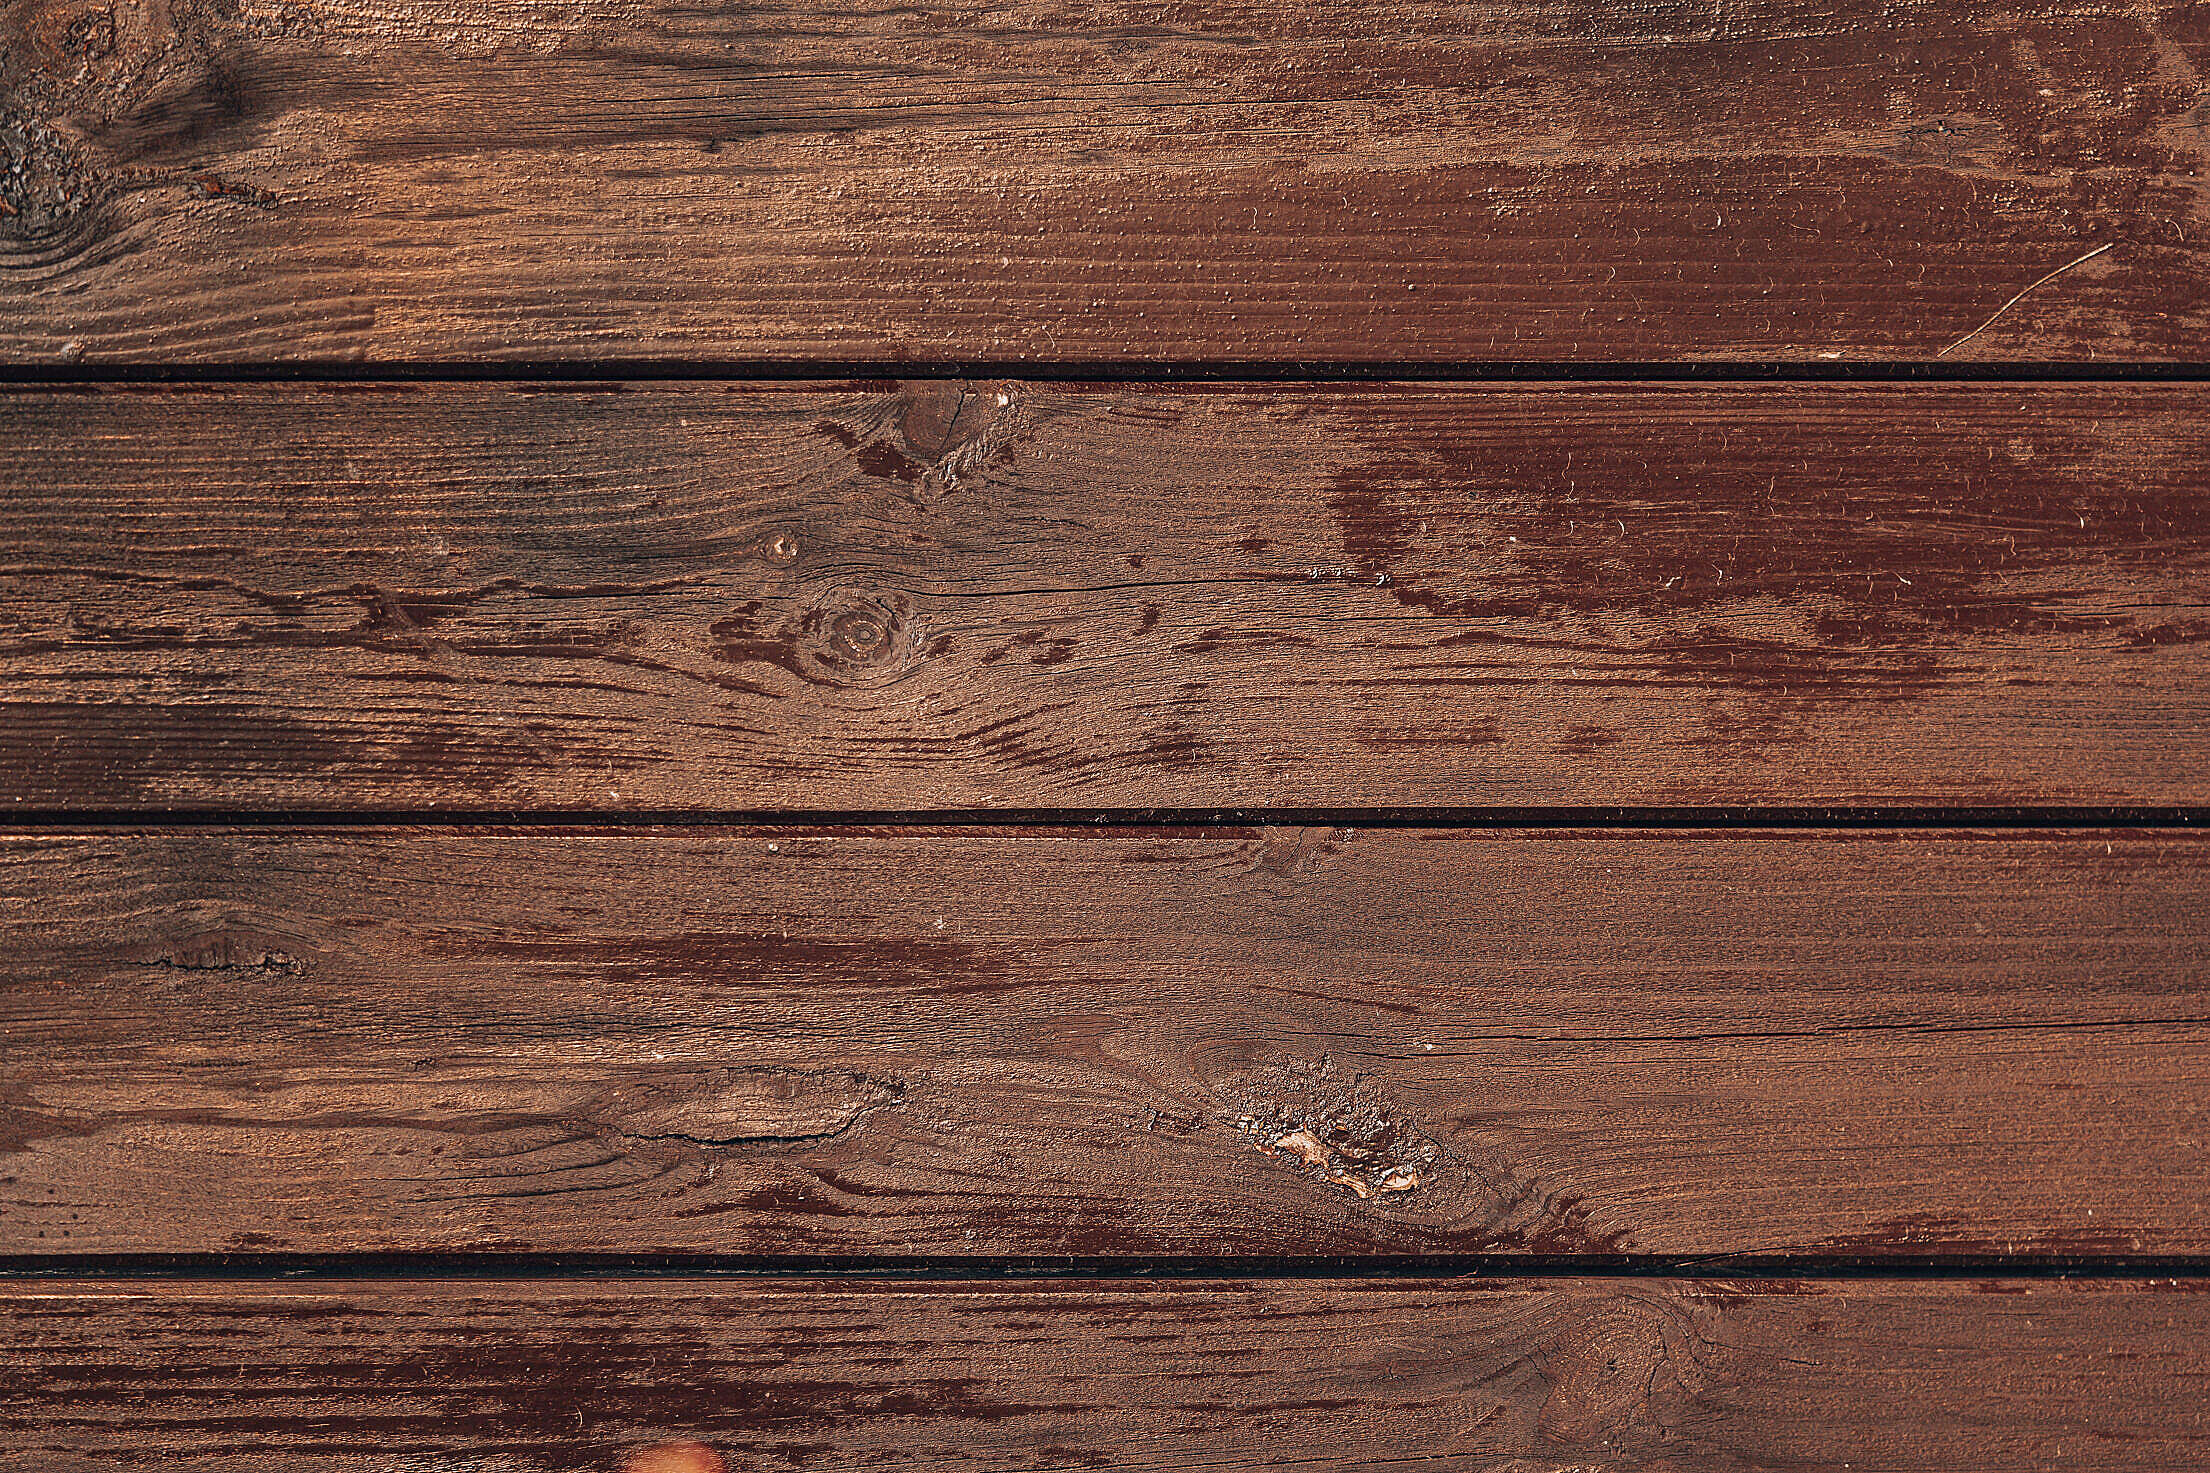 Brown Wooden Texture Free Stock Photo